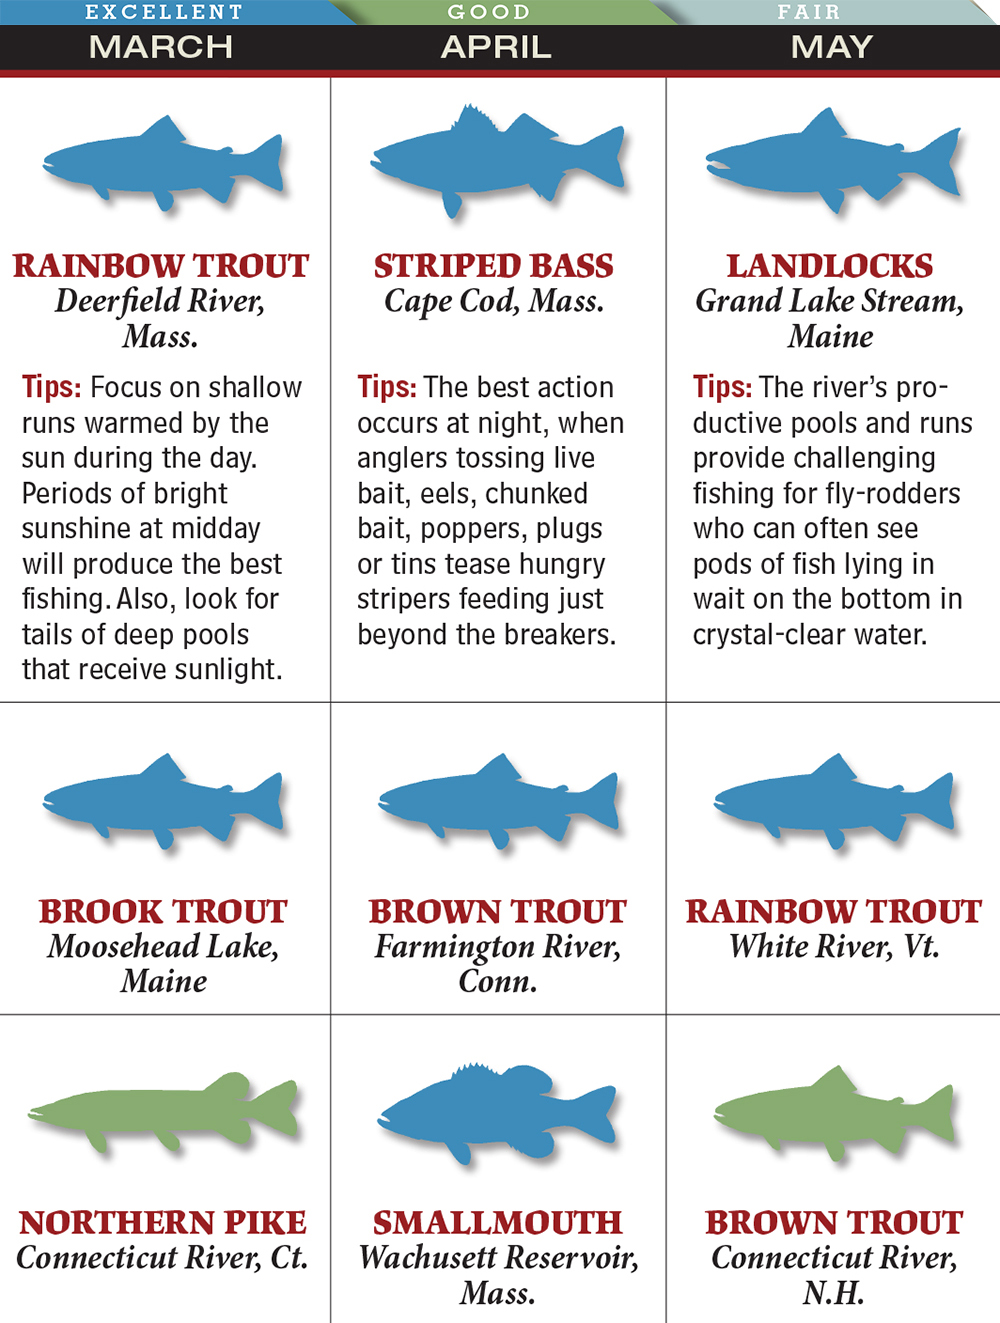 Your Best Spring Fishing in Connecticut